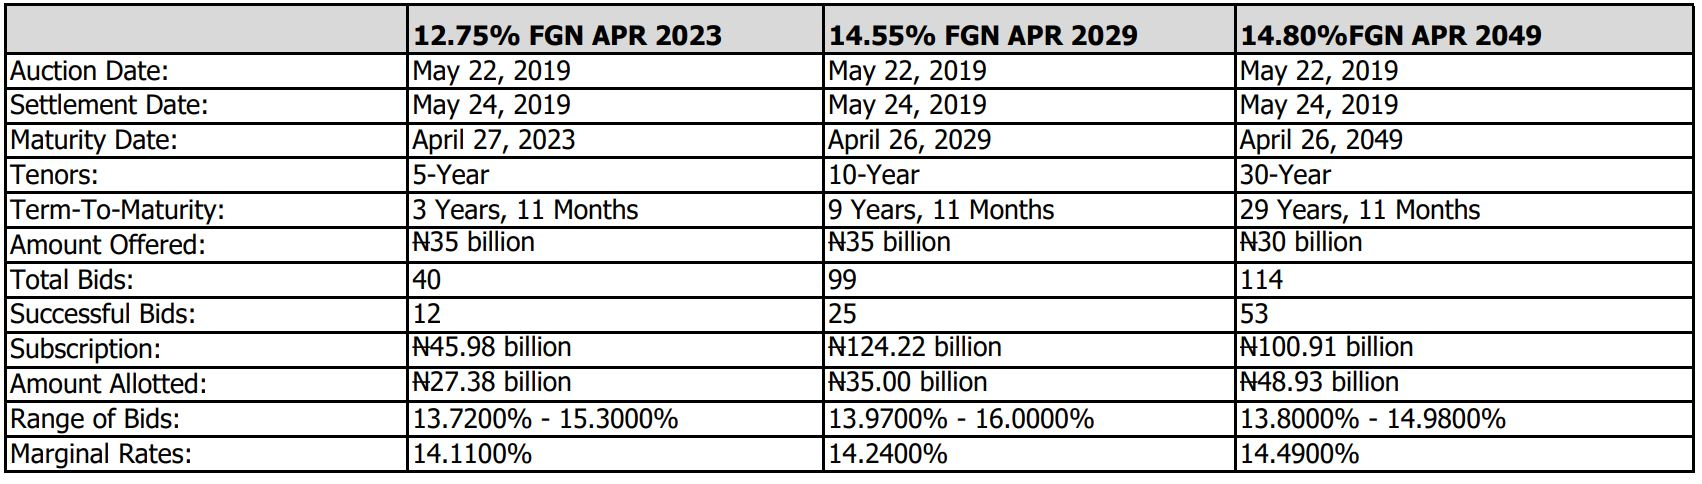 Summary of FGN Bond Auction Results For May 2019